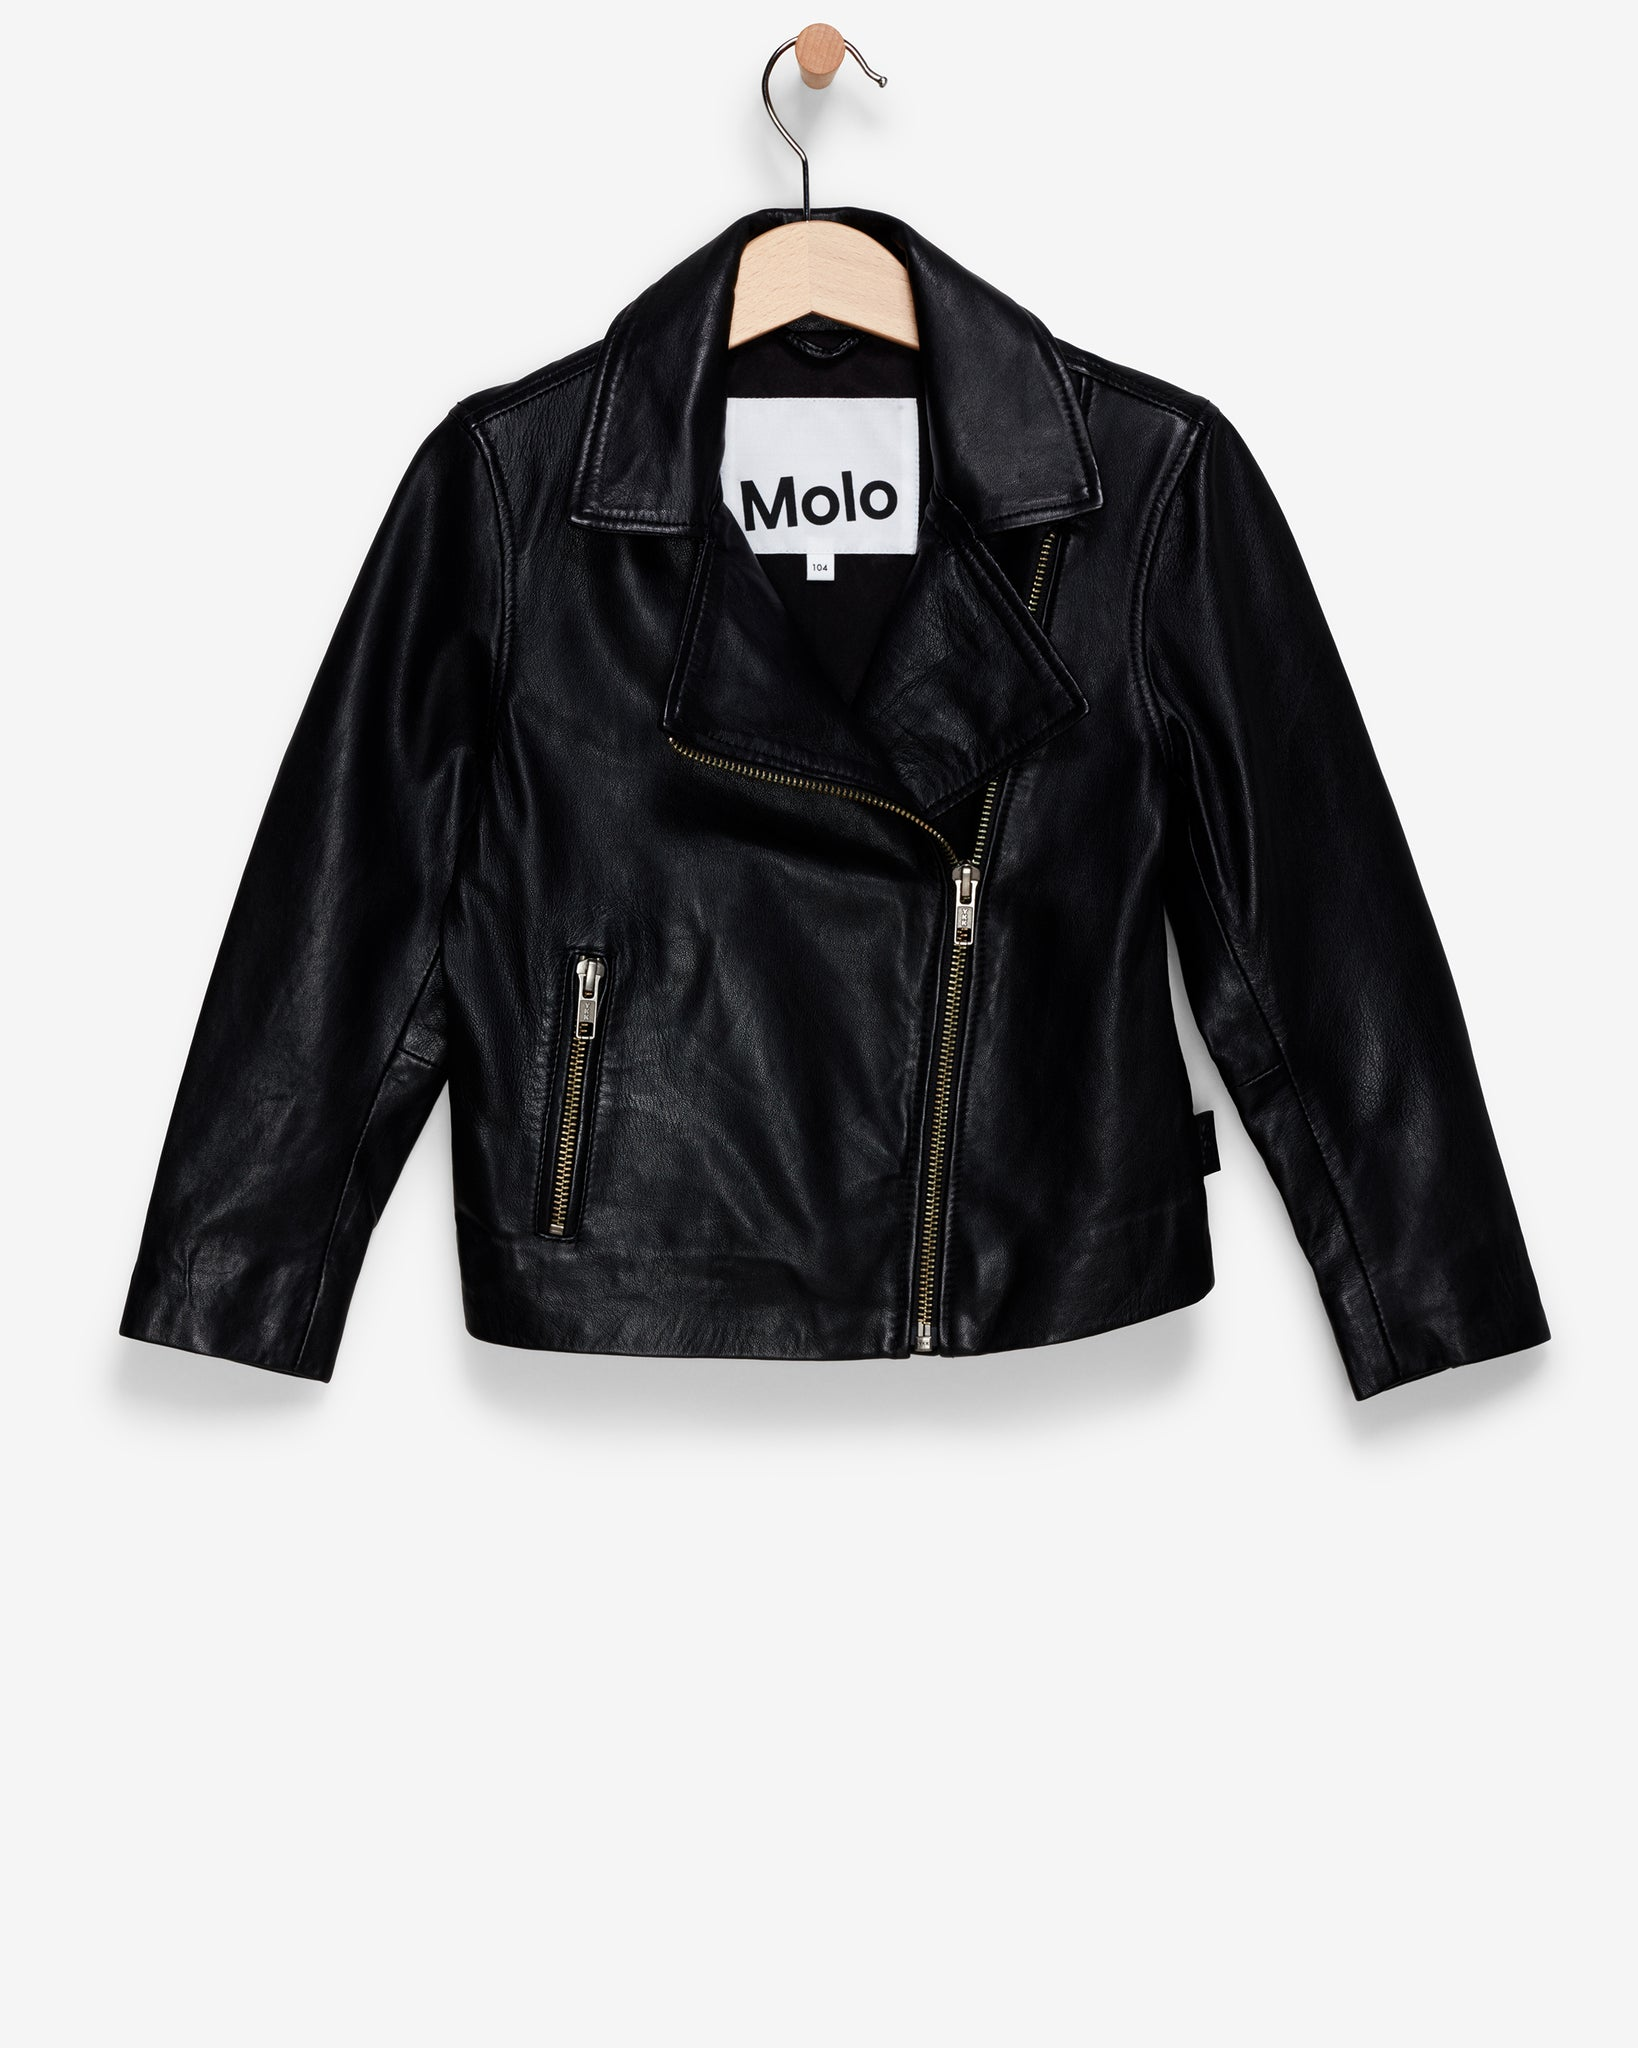 Moto Style Leather Jacket